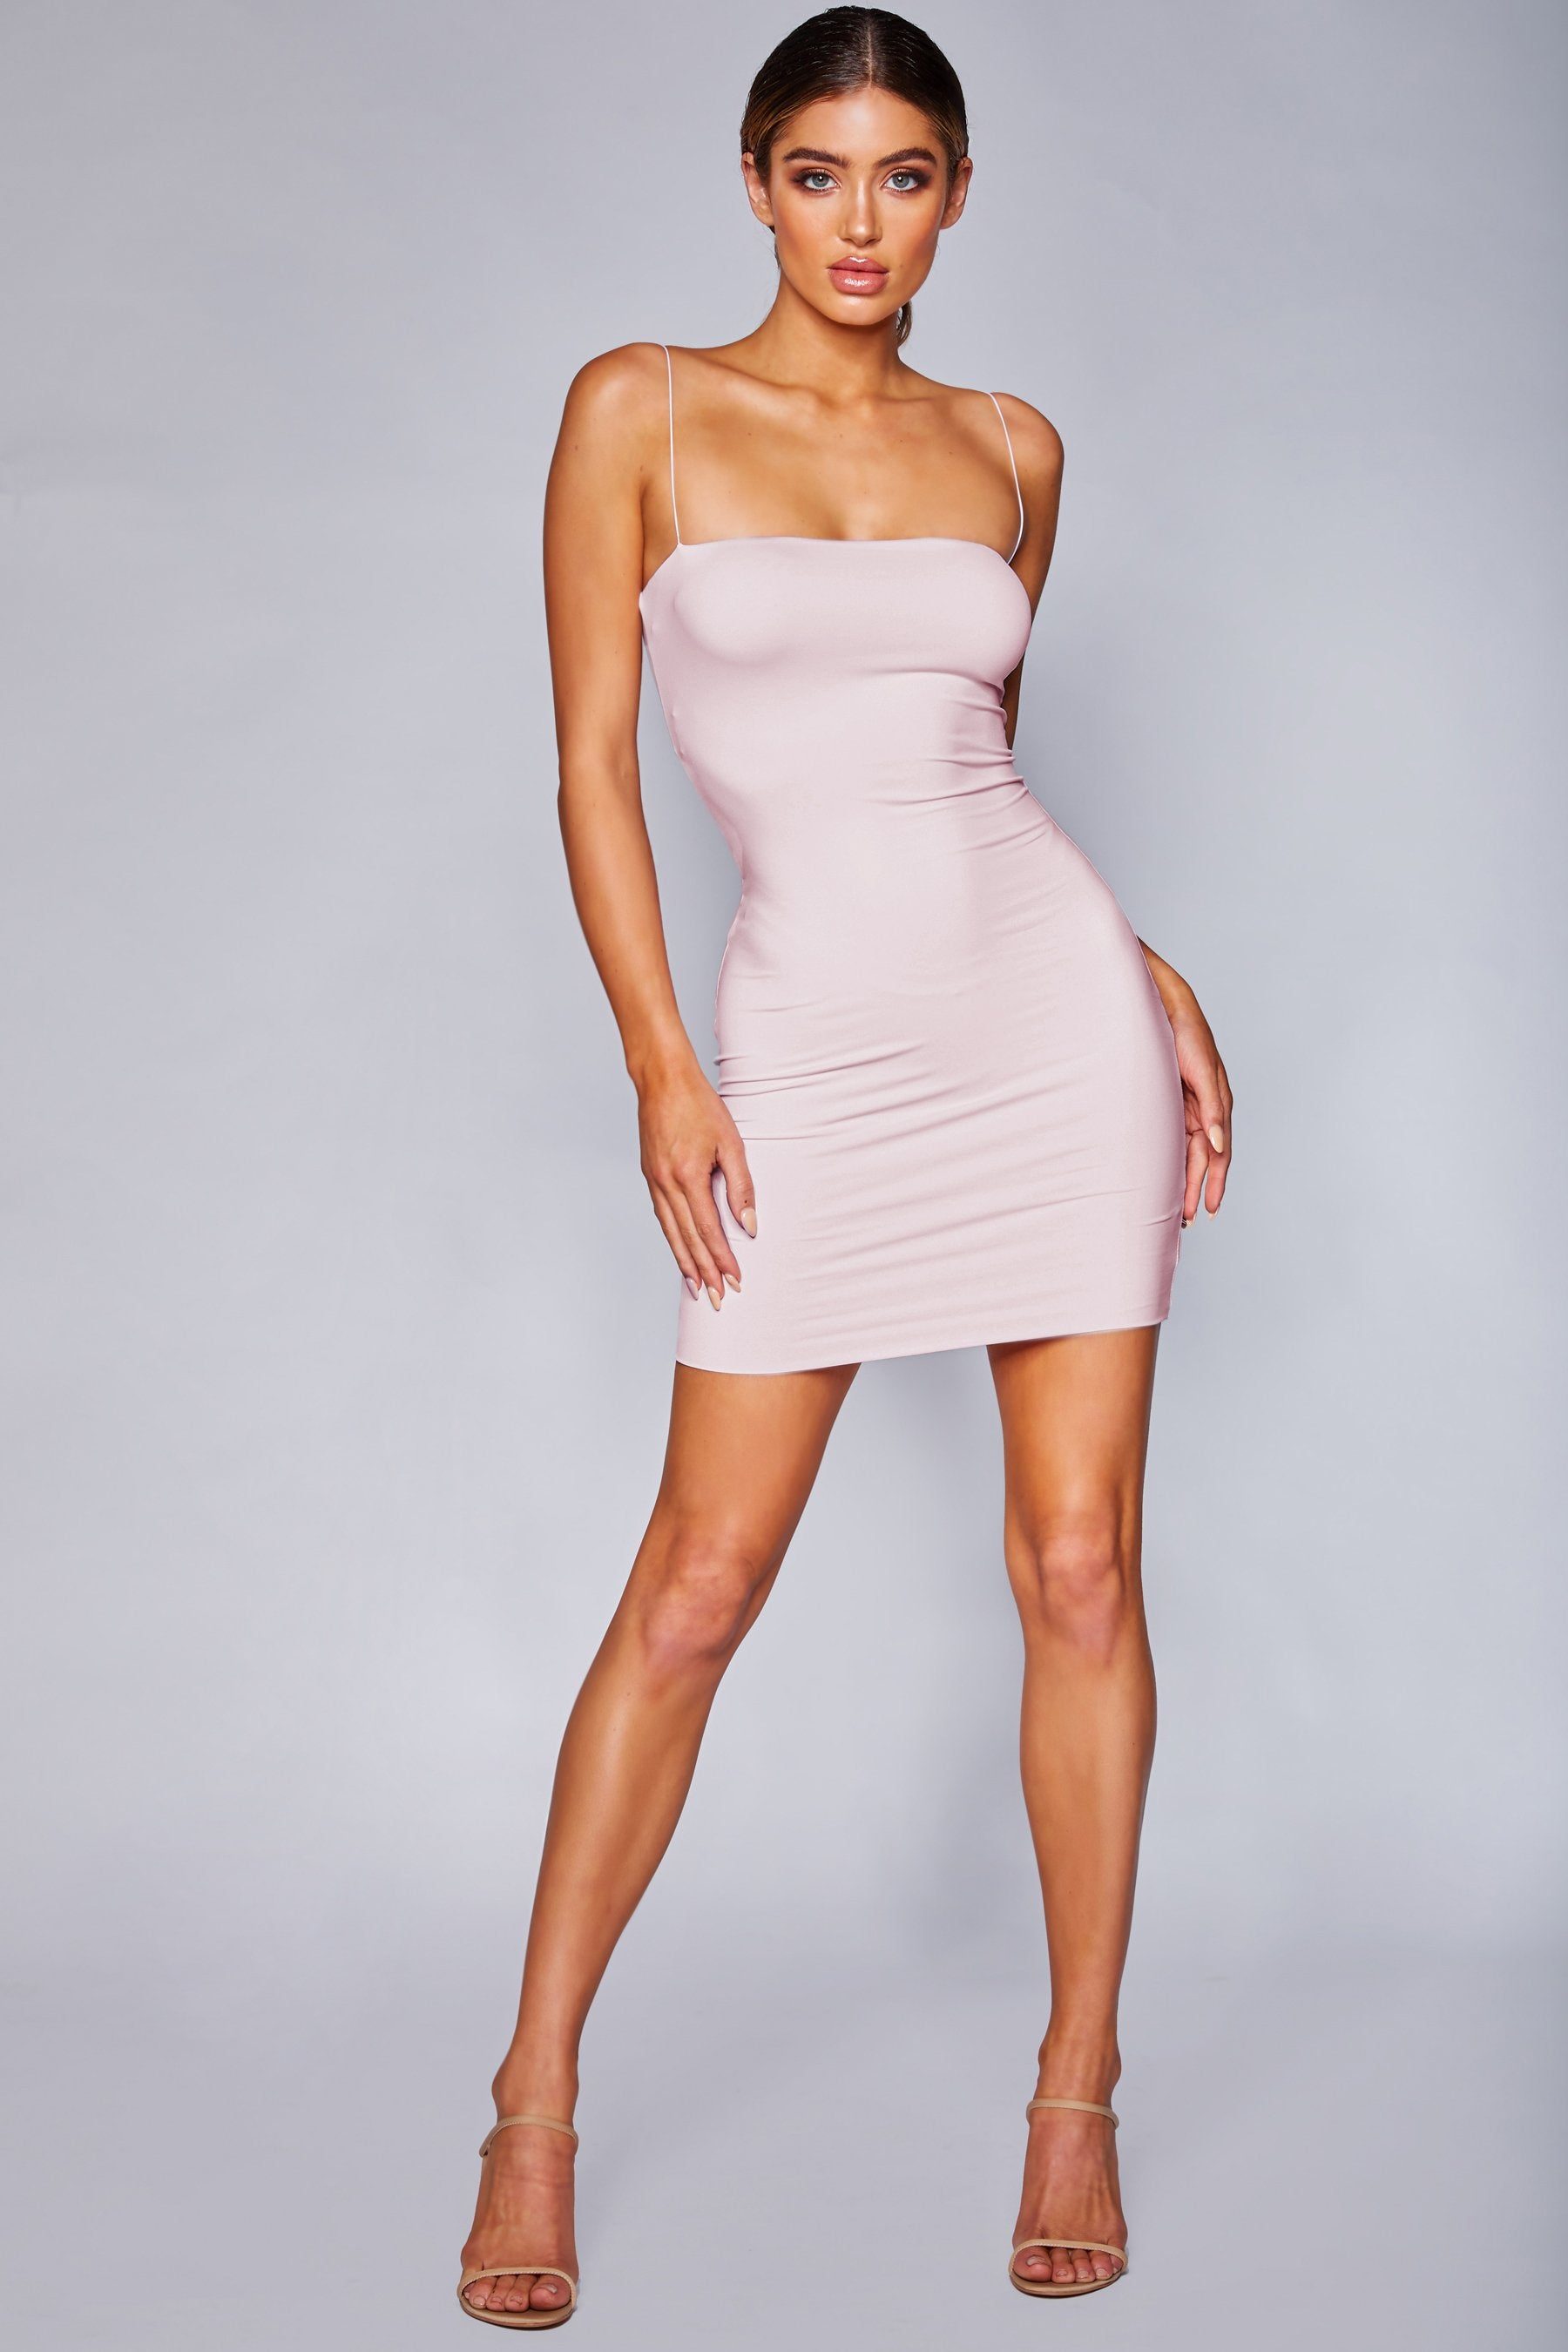 7f8cfedd9403 Mia Thin Strap Bodycon Mini Dress - Baby Pink - MESHKI